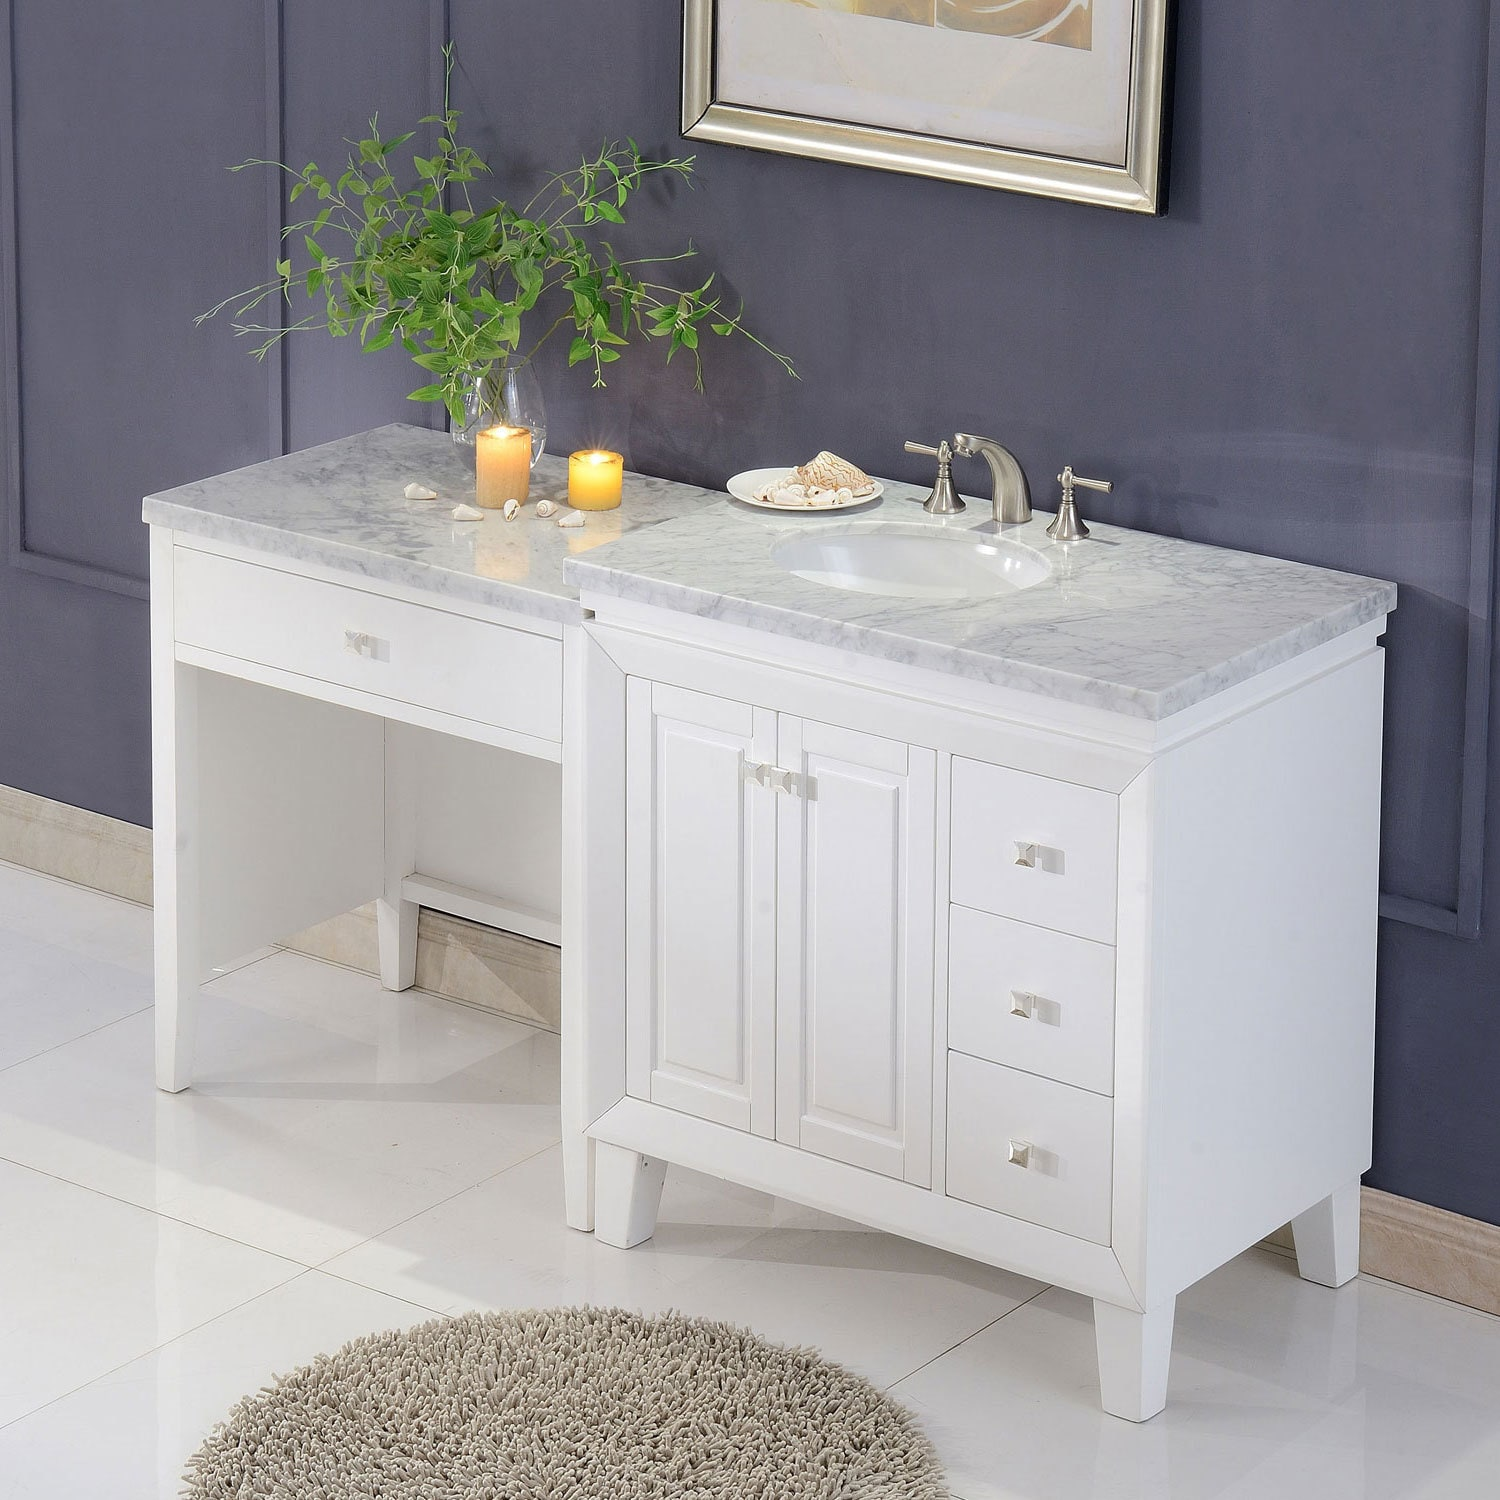 Silkroad Exclusive 67 Transitional Bathroom Vanity Carrara Marble Top Single Sink Cabinet Free Shipping Today 16994321